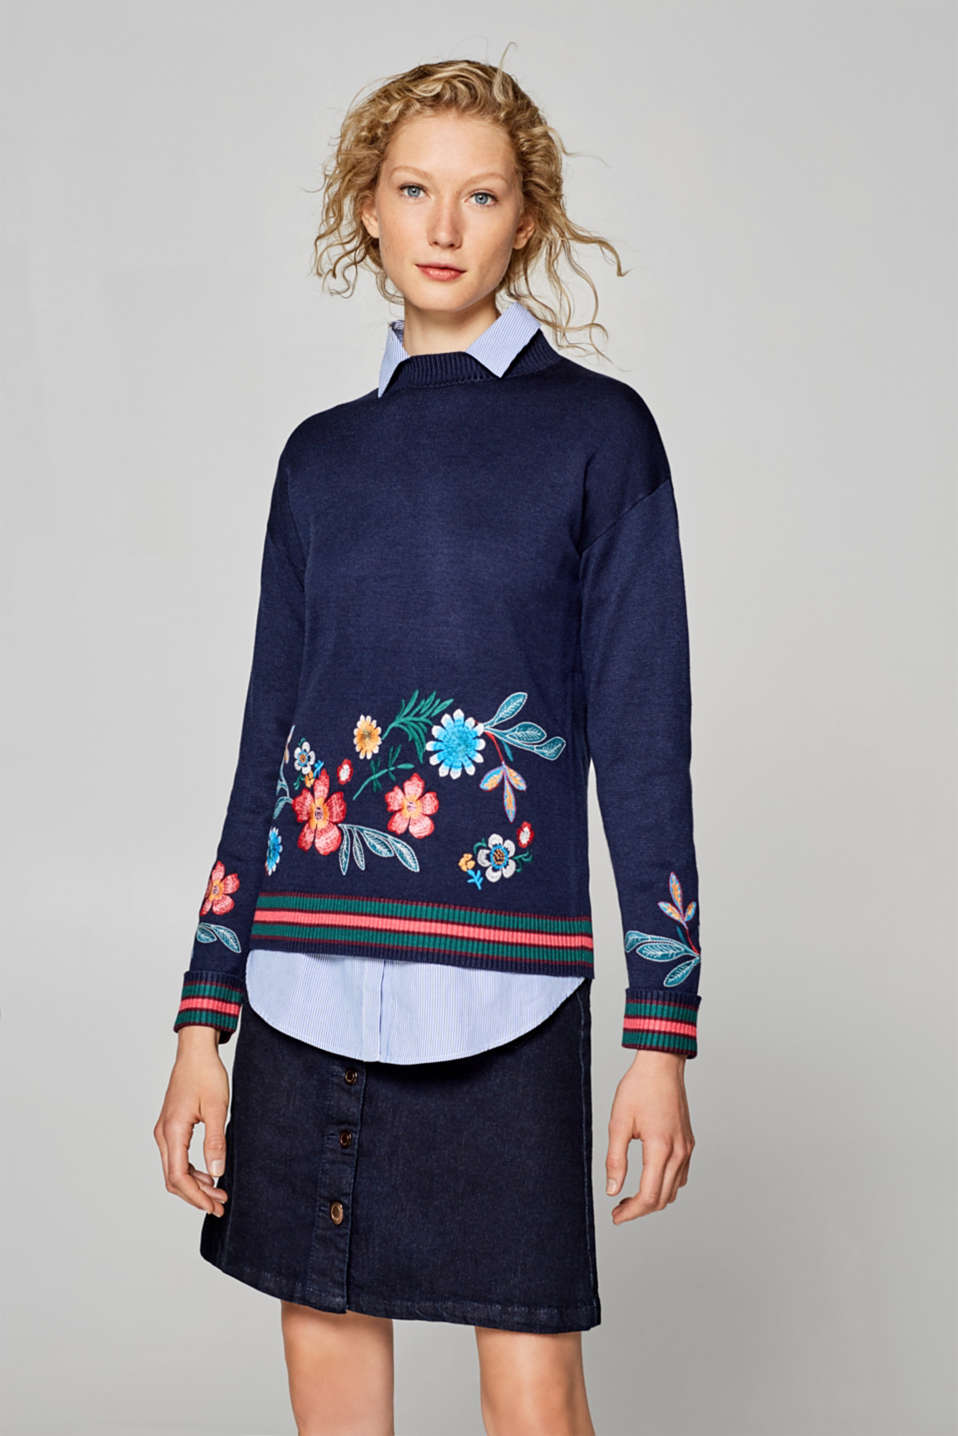 Esprit - Cotton jumper with floral embroidery